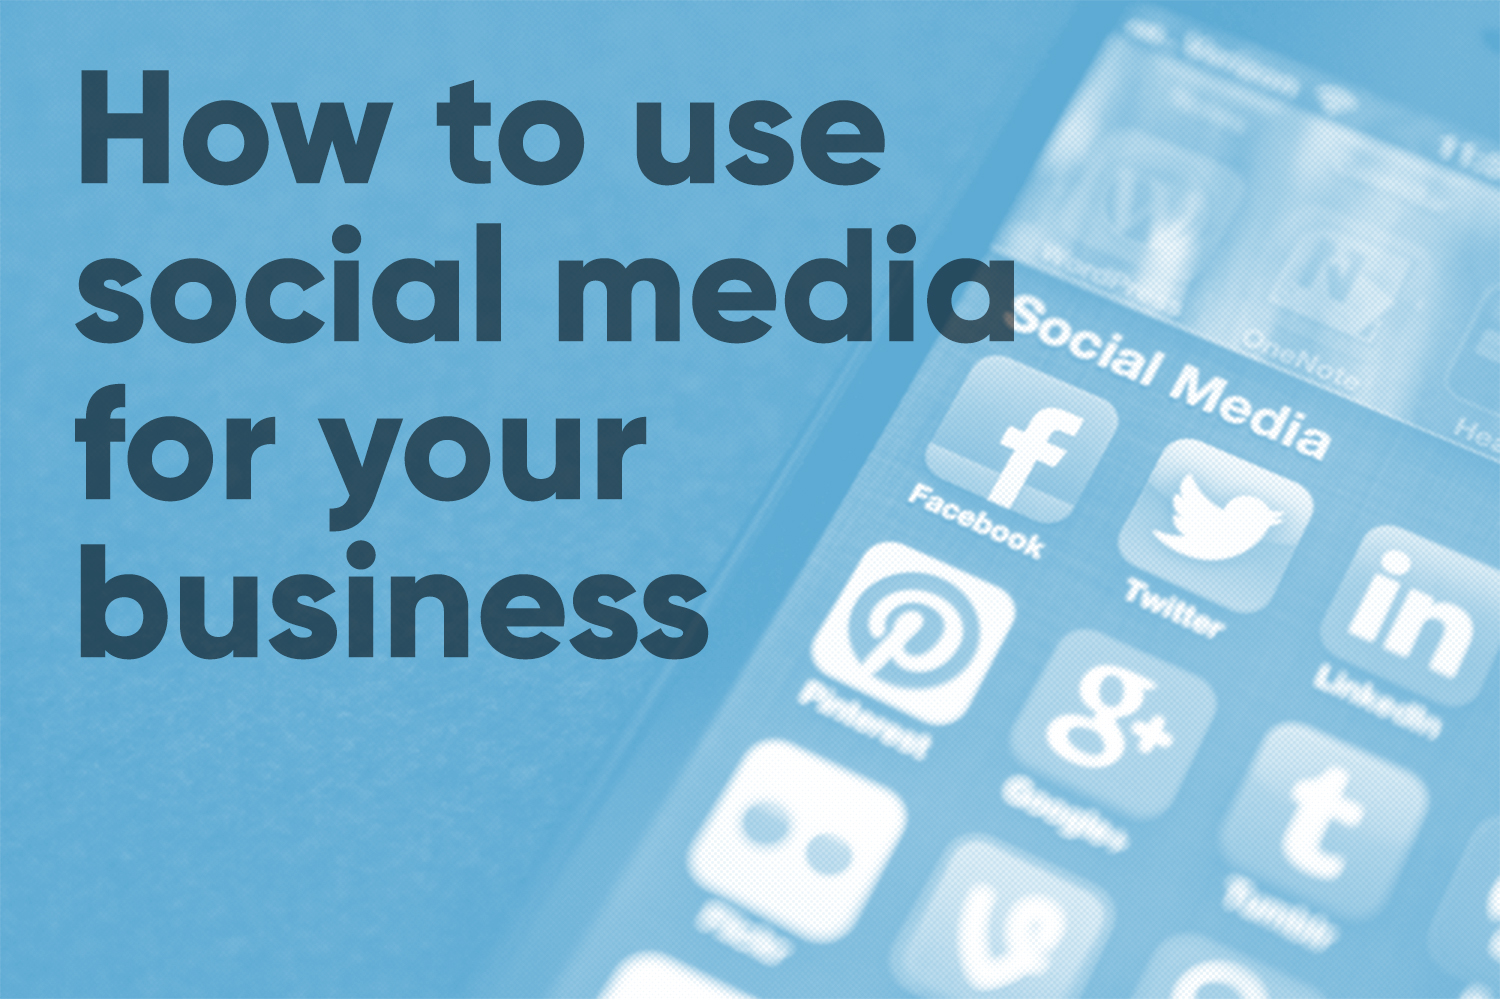 how to use social media for business.jpg